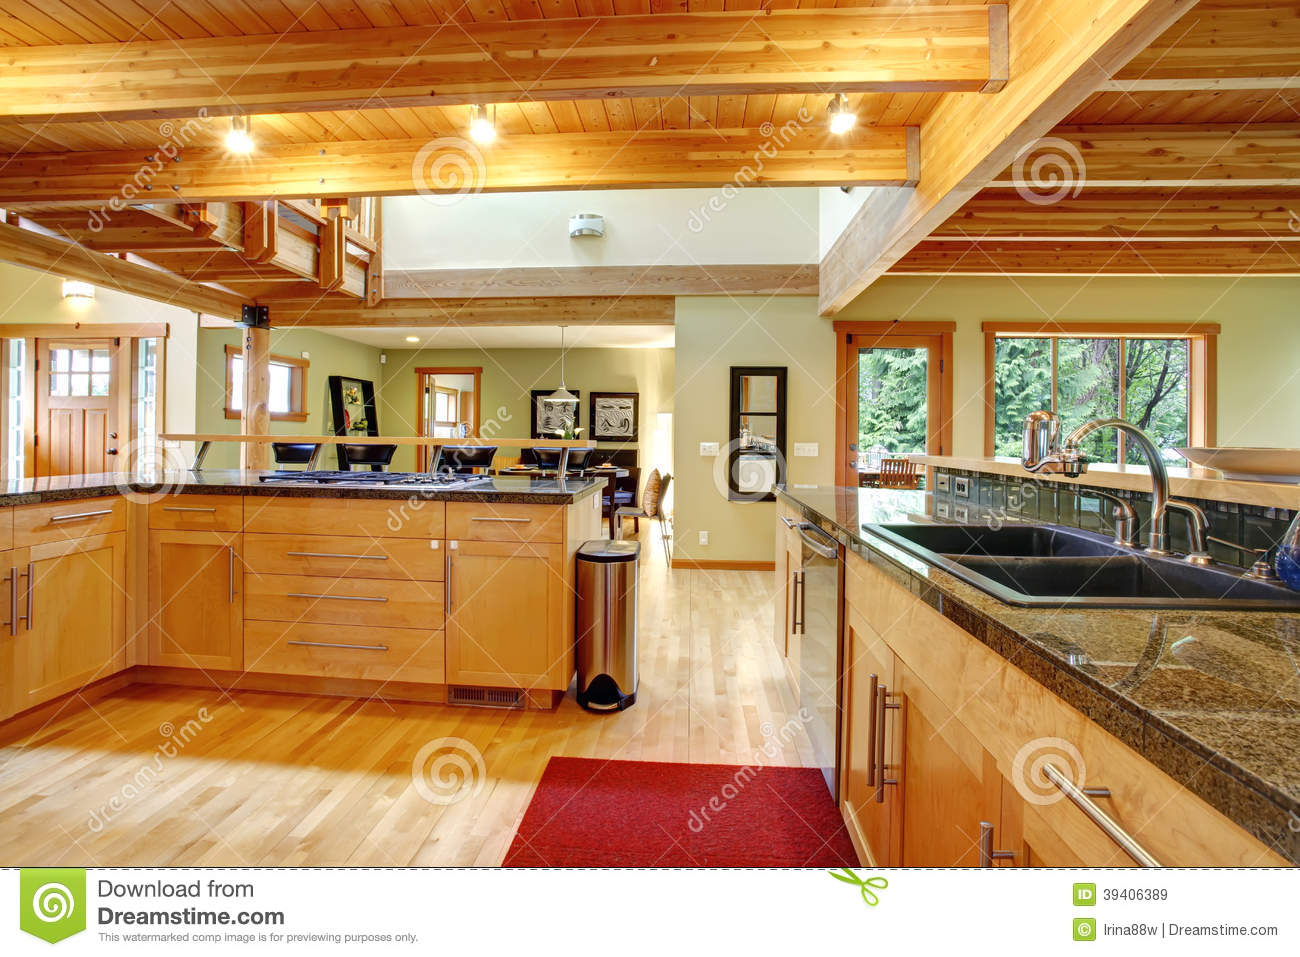 View Of Kitchen Cabinets Ceiling Beams And Hardwood Floor With Red